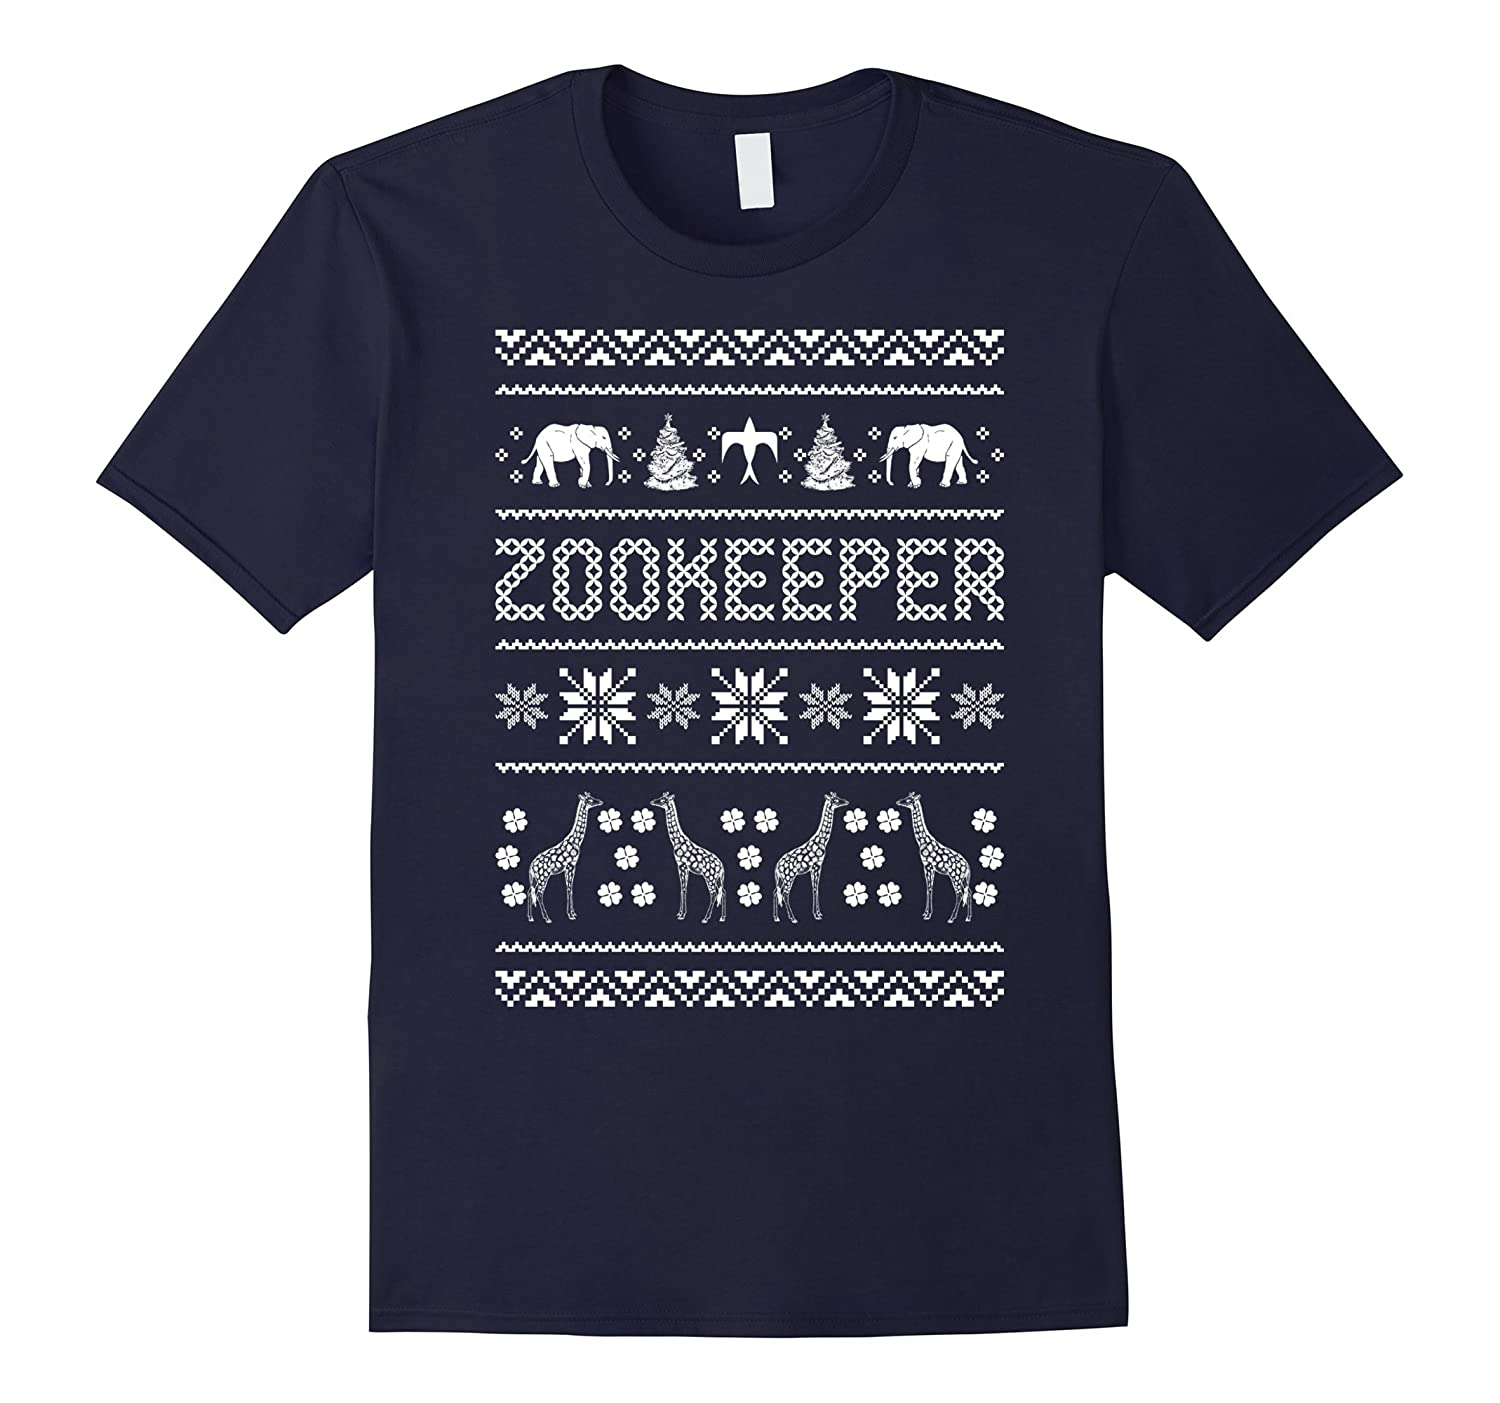 Zookeeper Ugly Christmas Sweater Xmas Animals T-shirt-ANZ